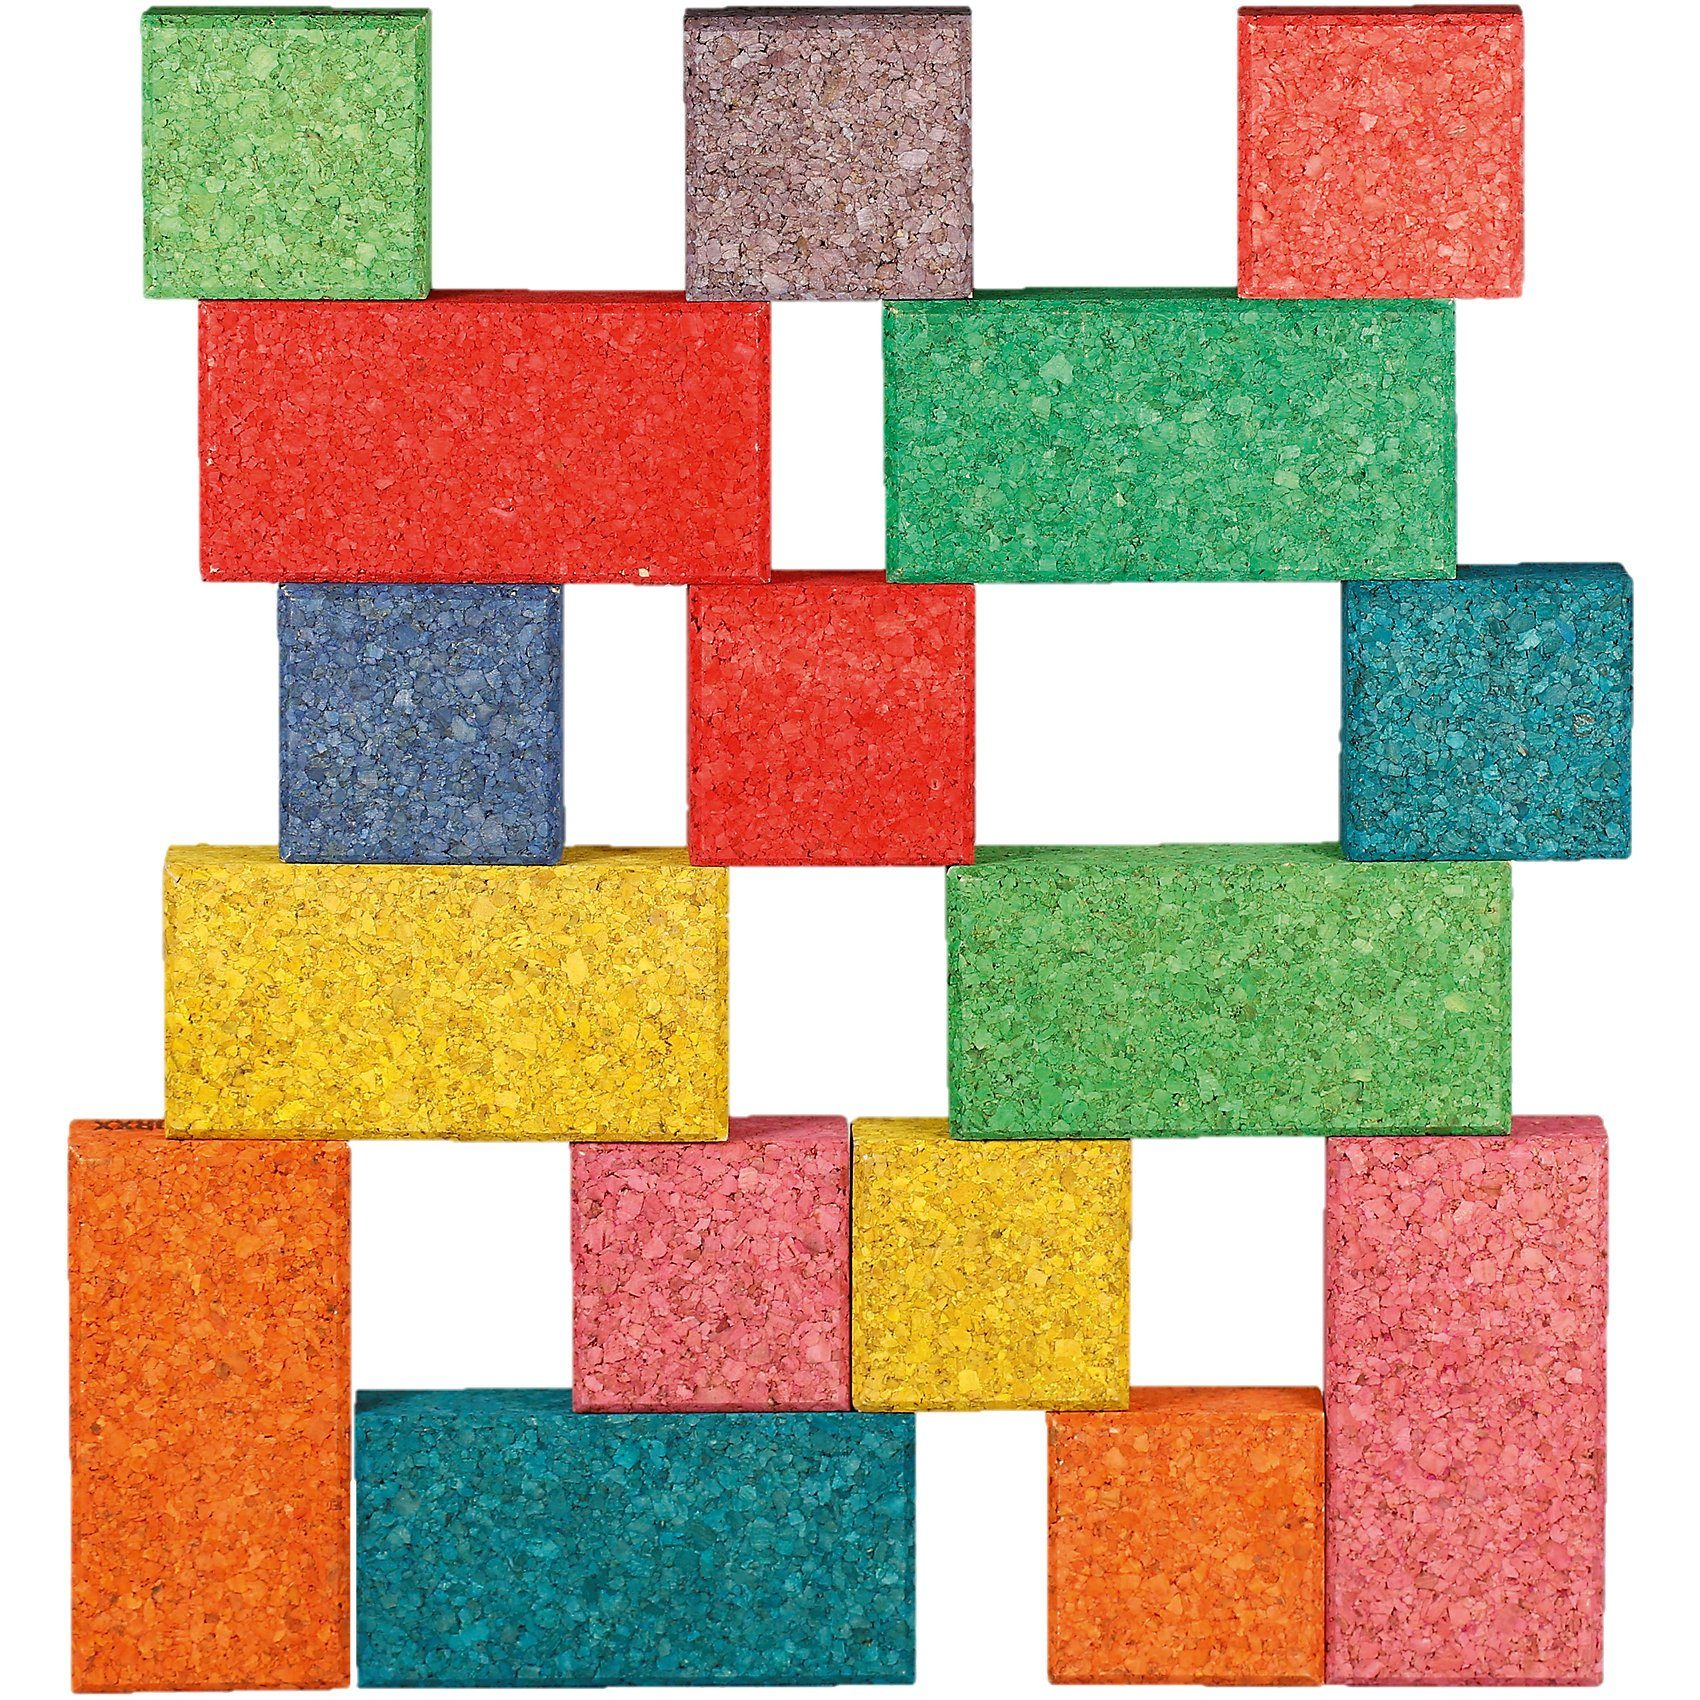 Korkbausteine Cuboid Mix Color edu, 38 Stk.